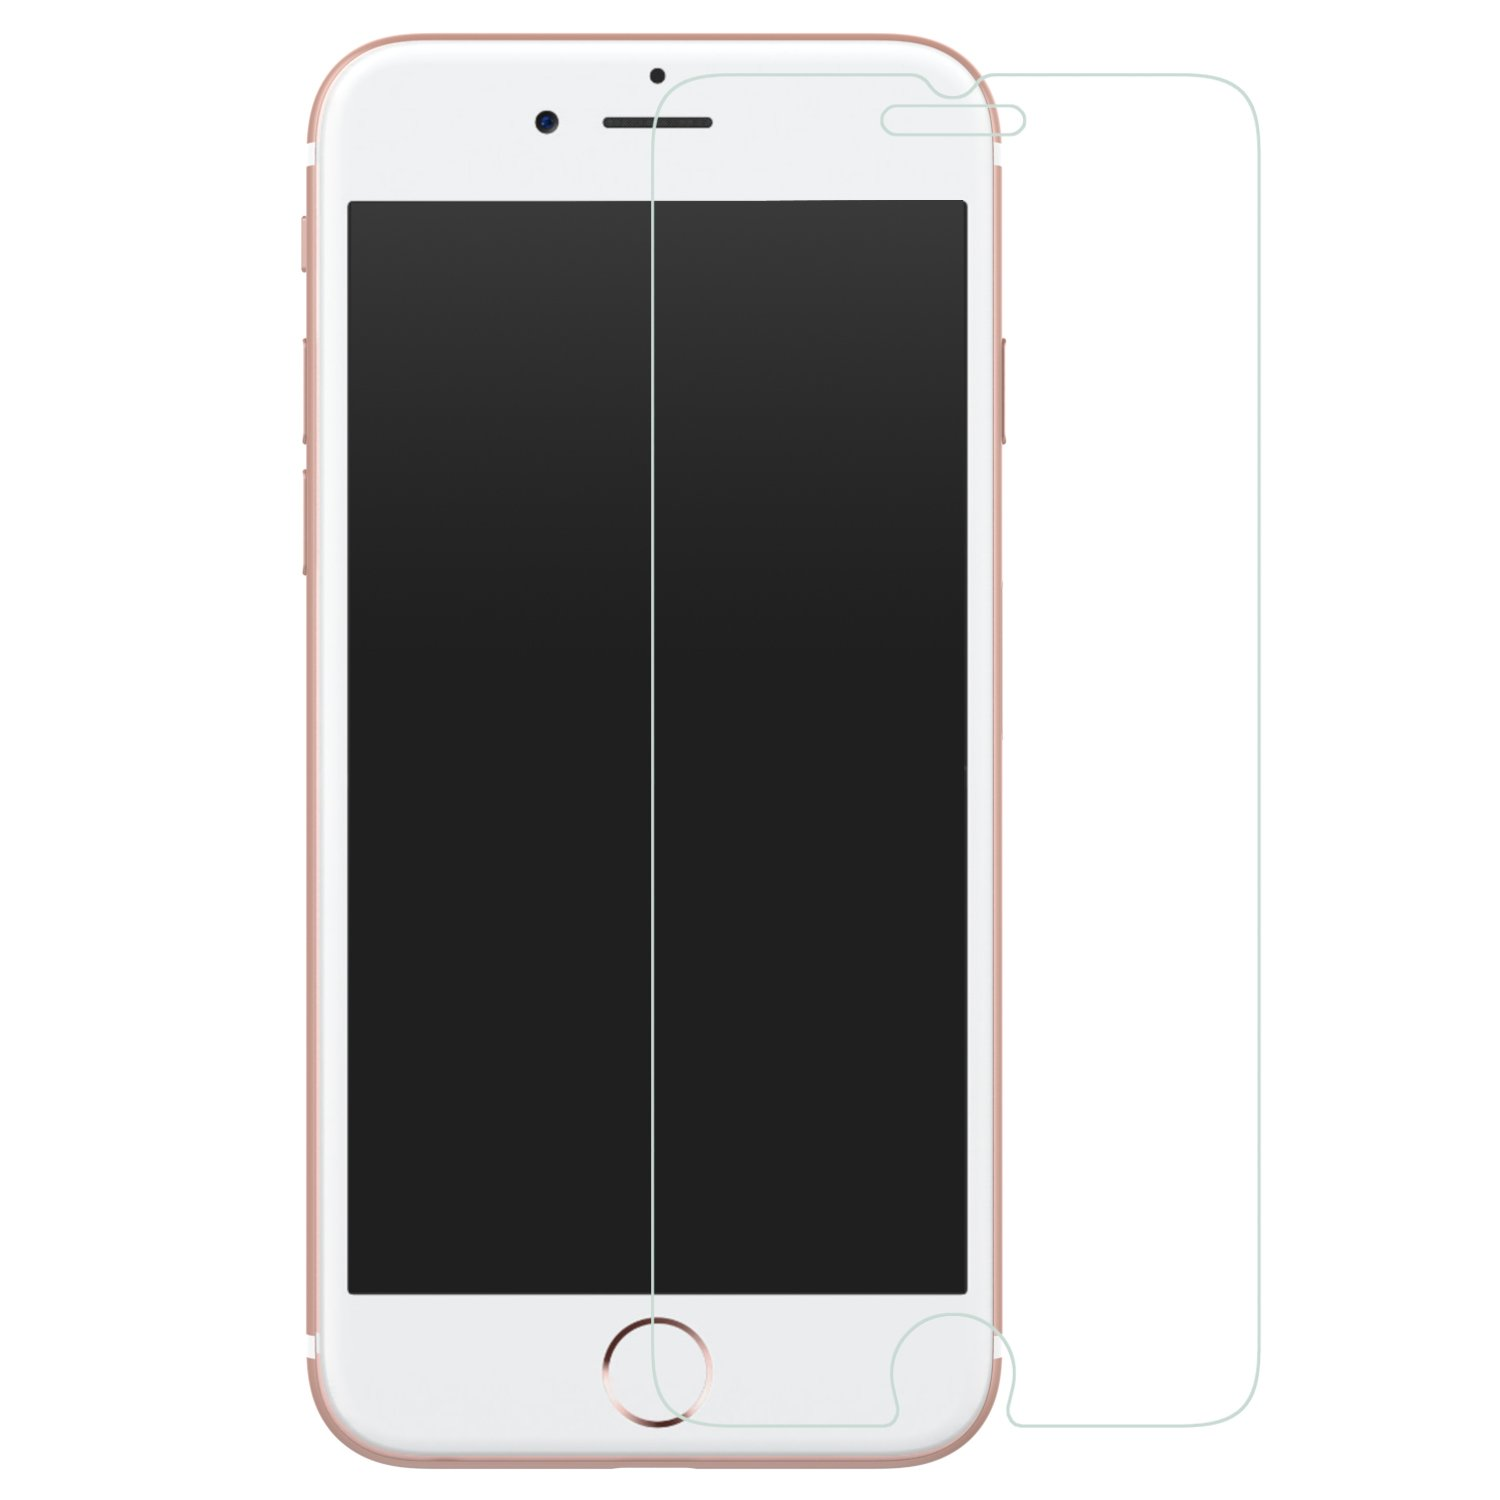 Iphone 7 Plus Screen Protector Moko [Tempered Glass] Hd Clear 9H Hardness Bal.. 16